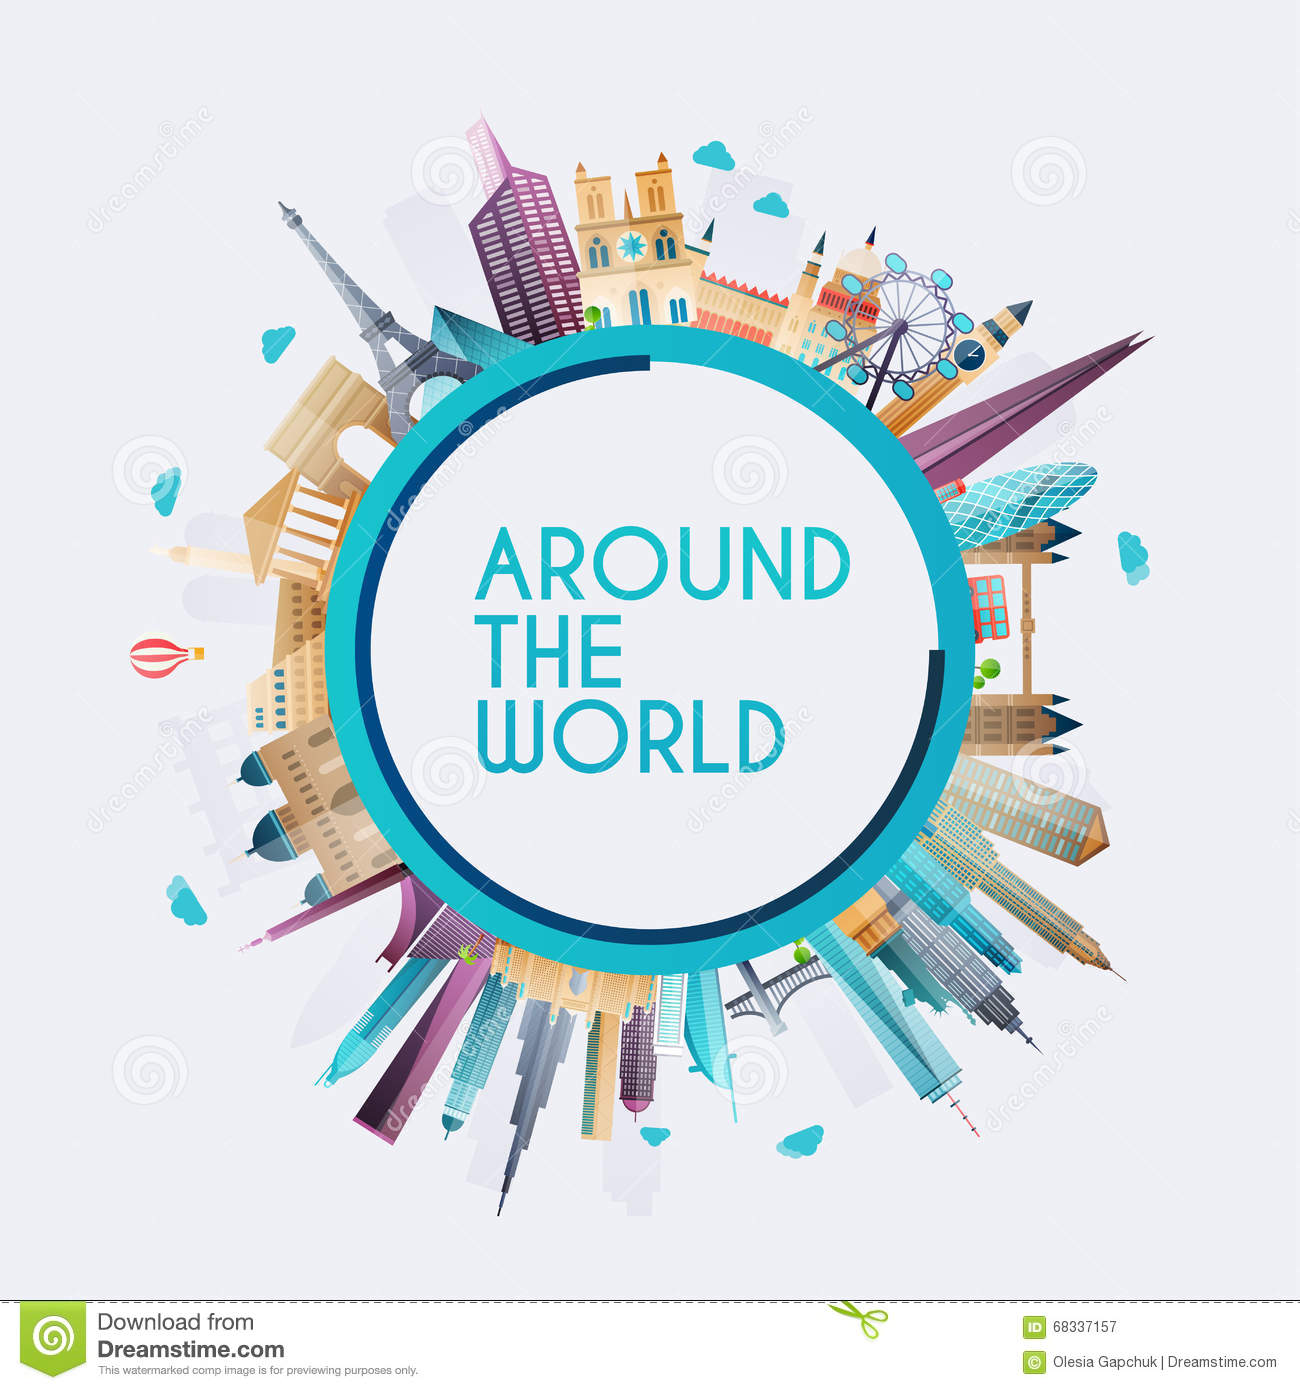 Planet earth travel the world travel stock vector for All inclusive around the world trip